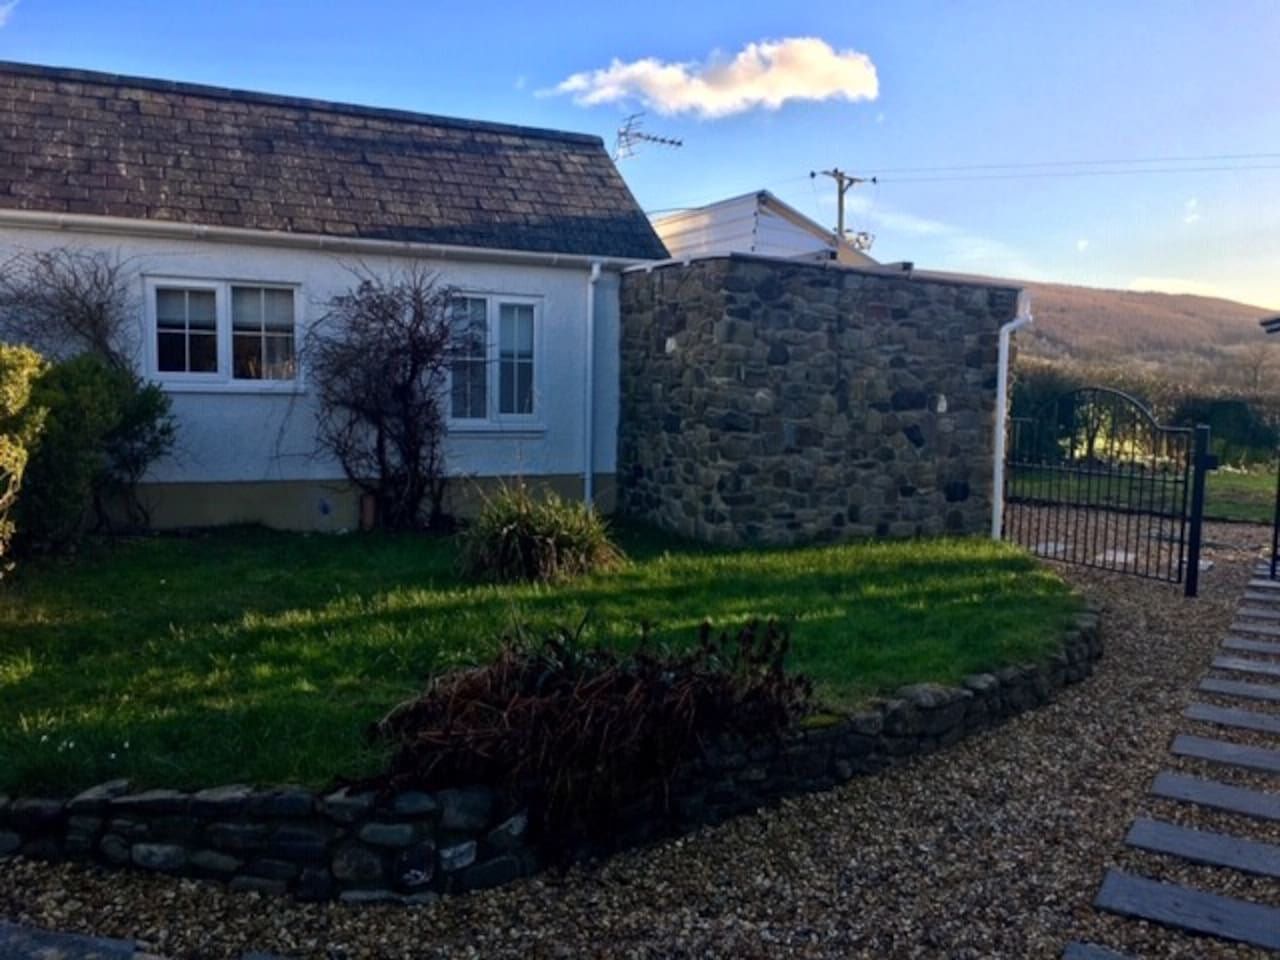 Welcome To Daffodil House, Our detached annex with beautiful views of the welsh hills in the lovely hamlet of Cynghordy, Near Llandovery, Carmarthanshire